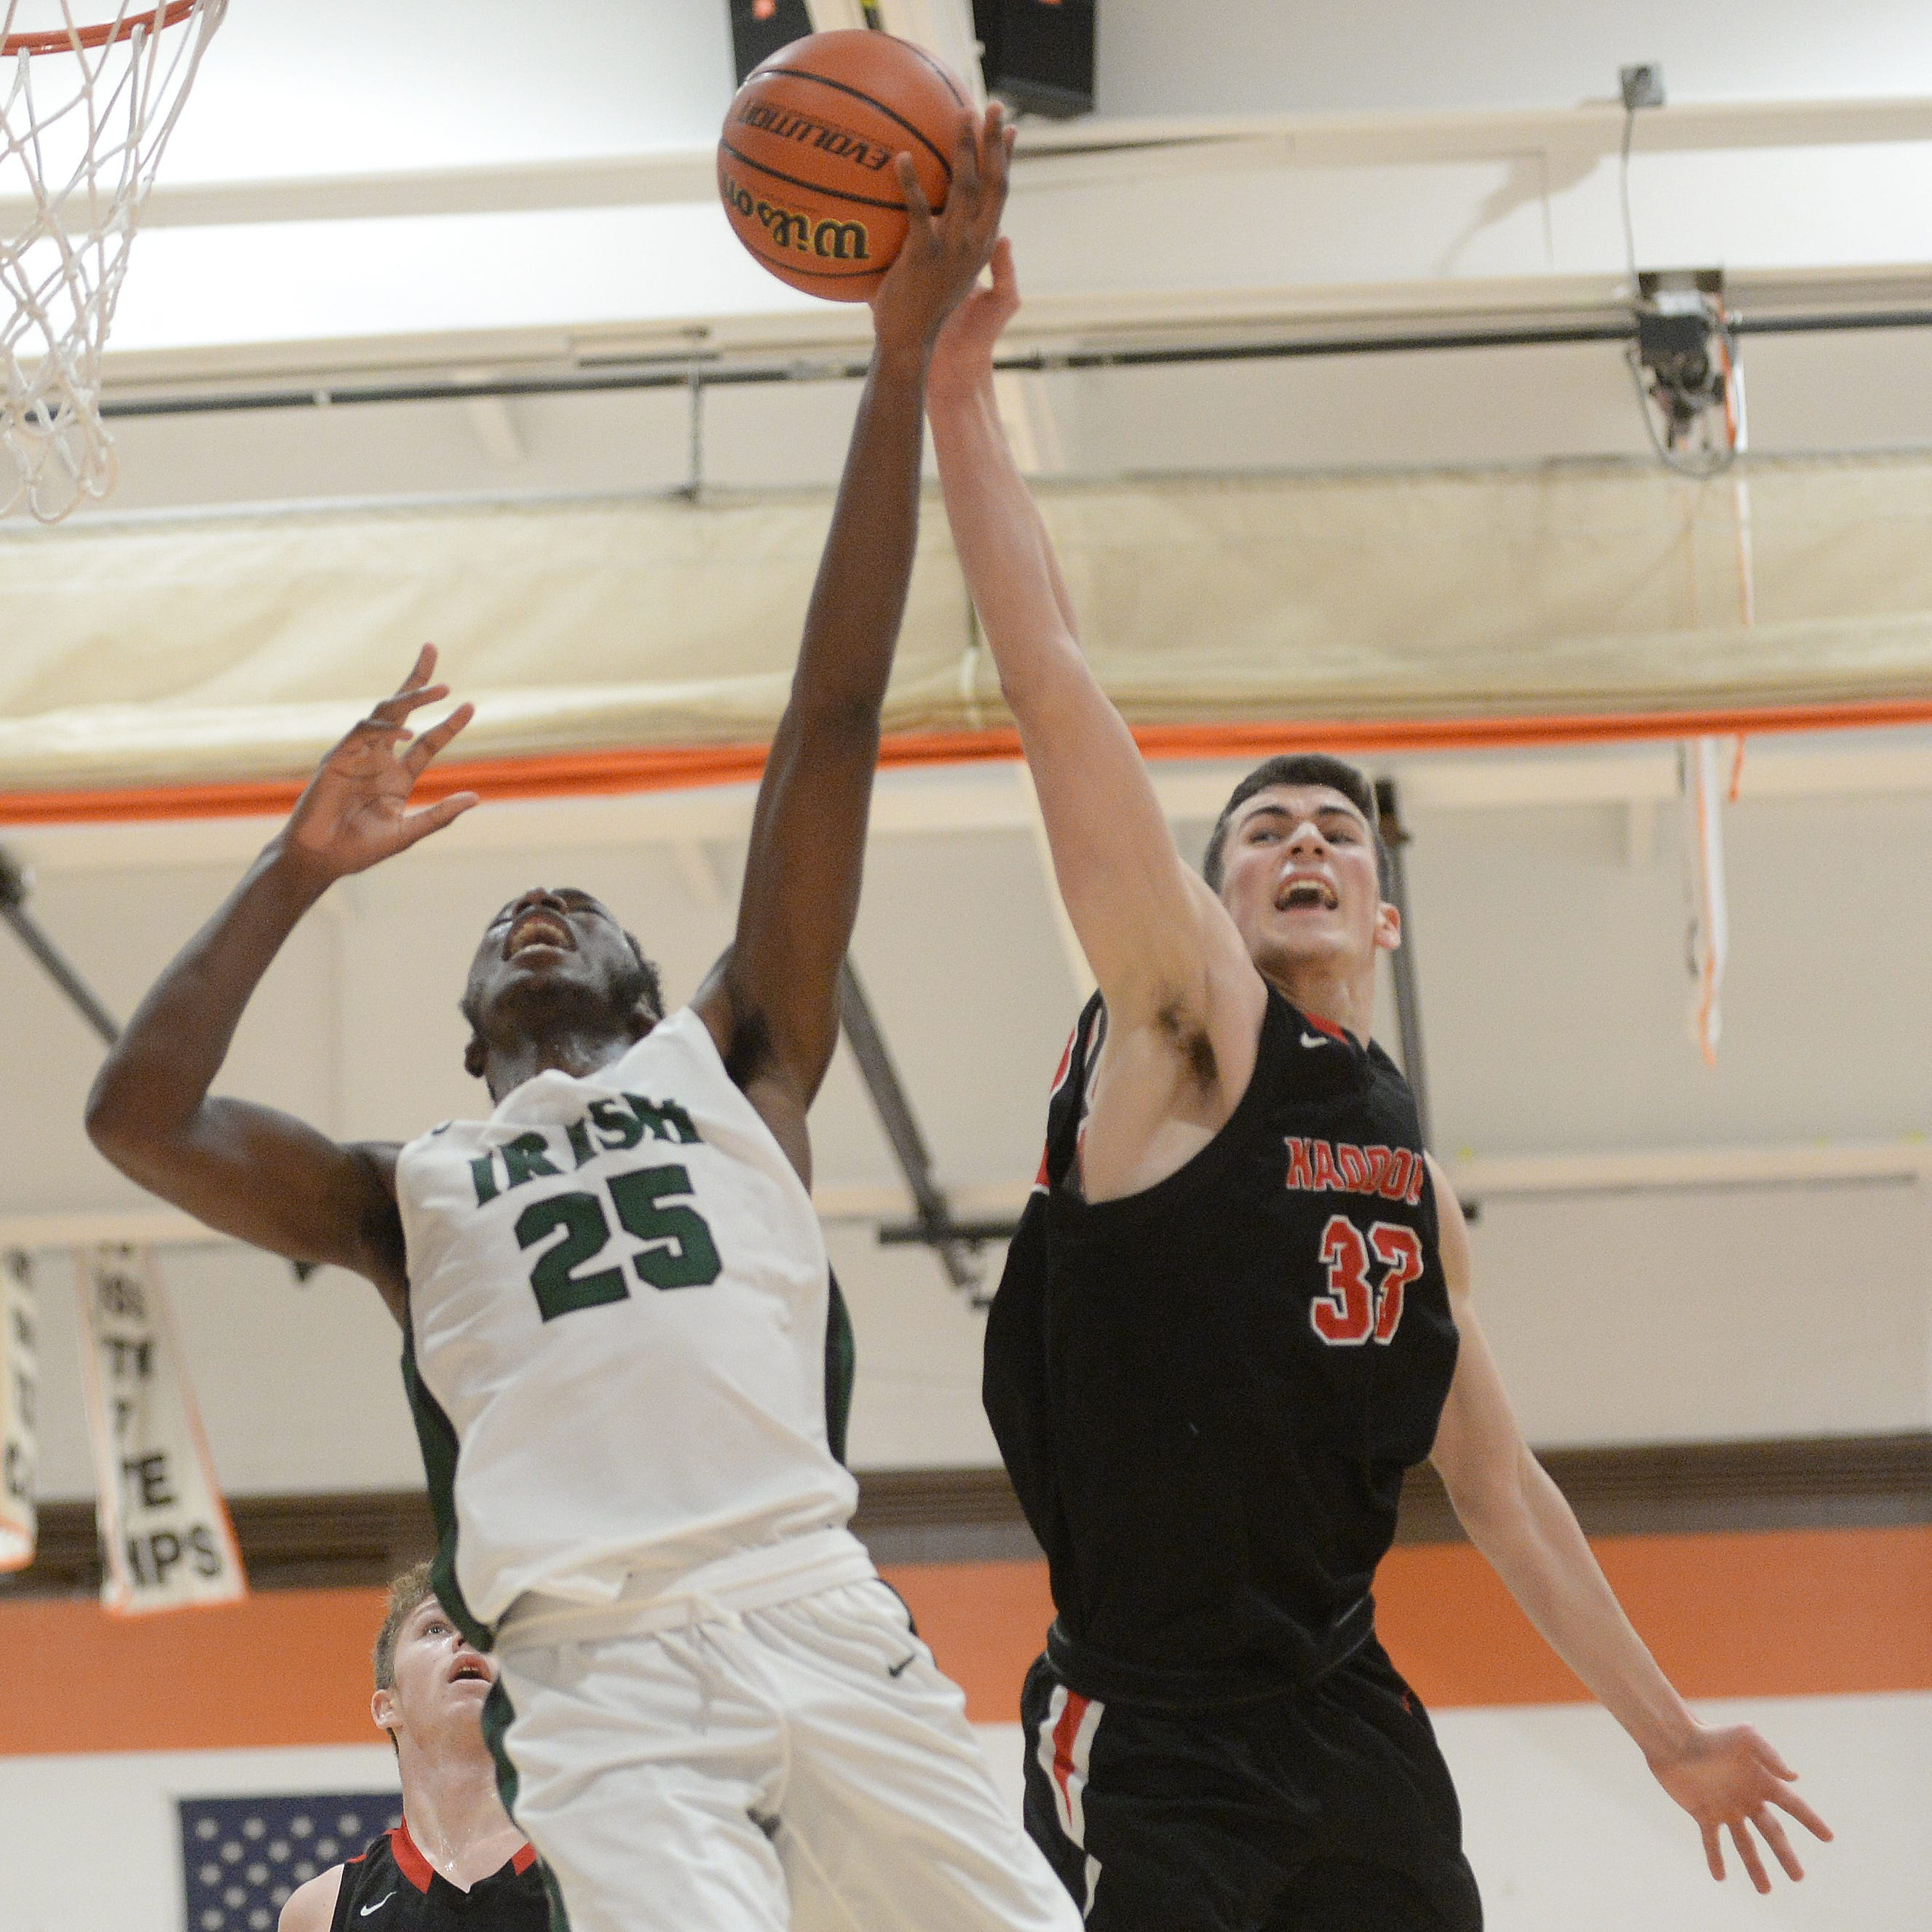 South Jersey basketball: Defense lifts No. 1 Haddonfield past No. 3 Camden Catholic